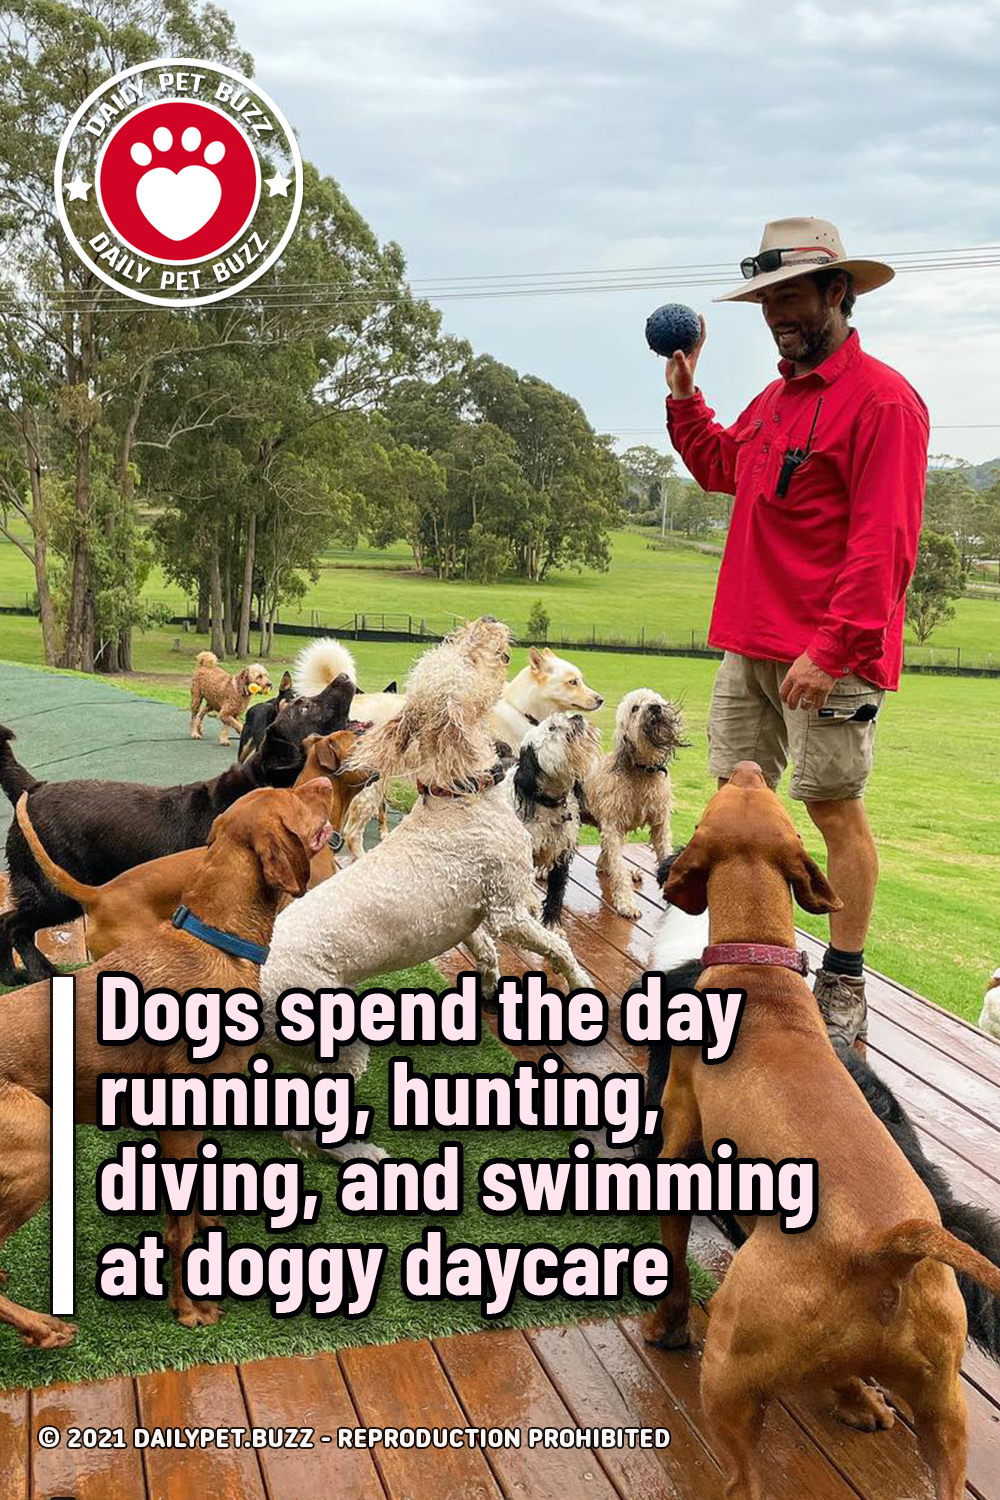 Dogs spend the day running, hunting, diving, and swimming at doggy daycare